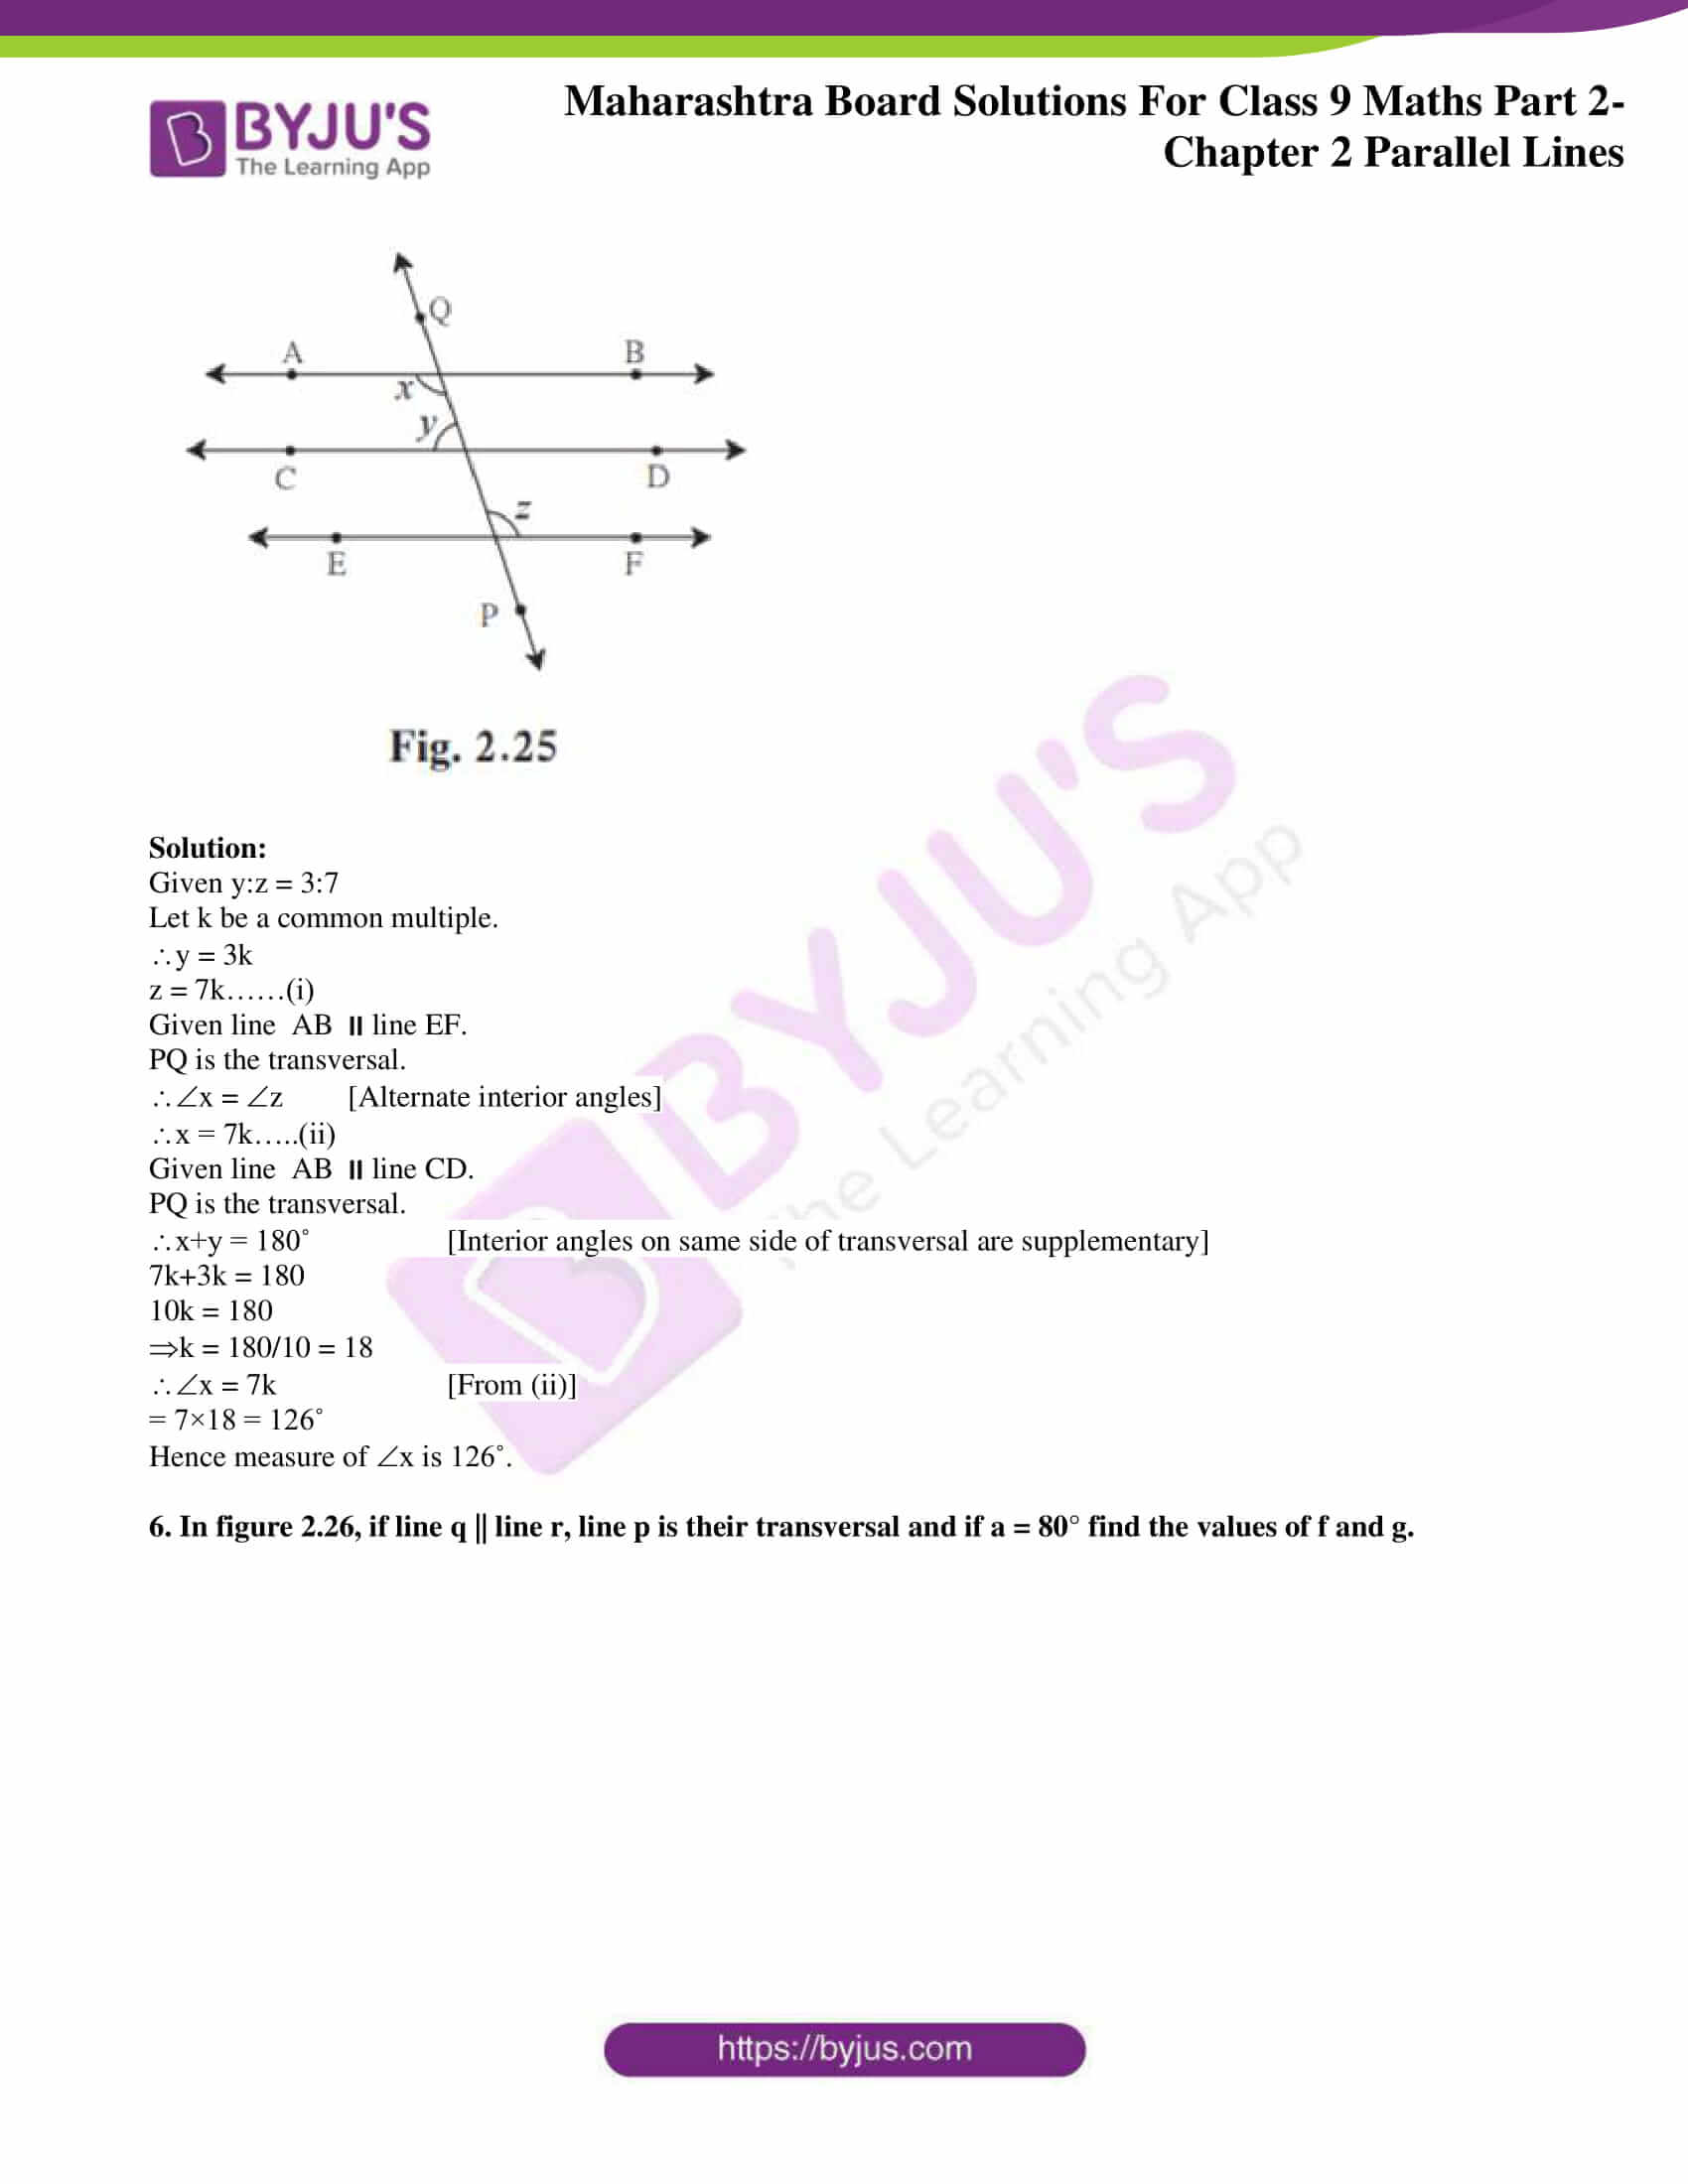 msbshse solutions for class 9 maths part 2 chapter 2 16